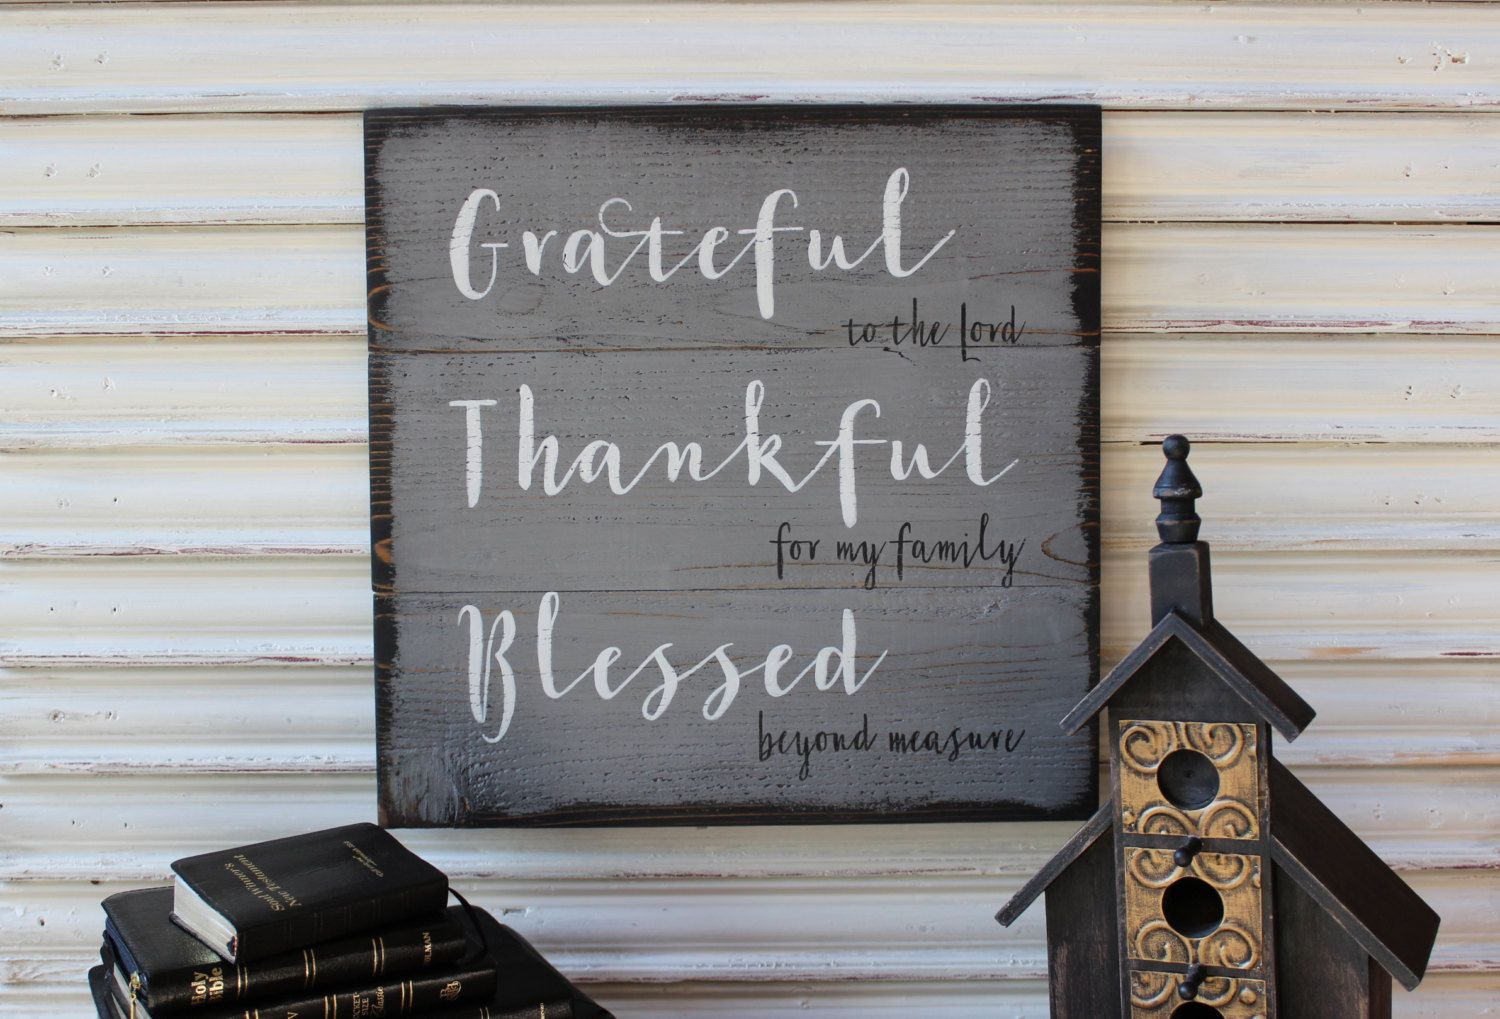 Inspirational Wood Sign, Grateful Thankful Blessed Sign, Gray Wood Sign, Inspirational Religious Sign, Rustic Primitive Sign, Shabby Chic by TinSheepShop on Etsy